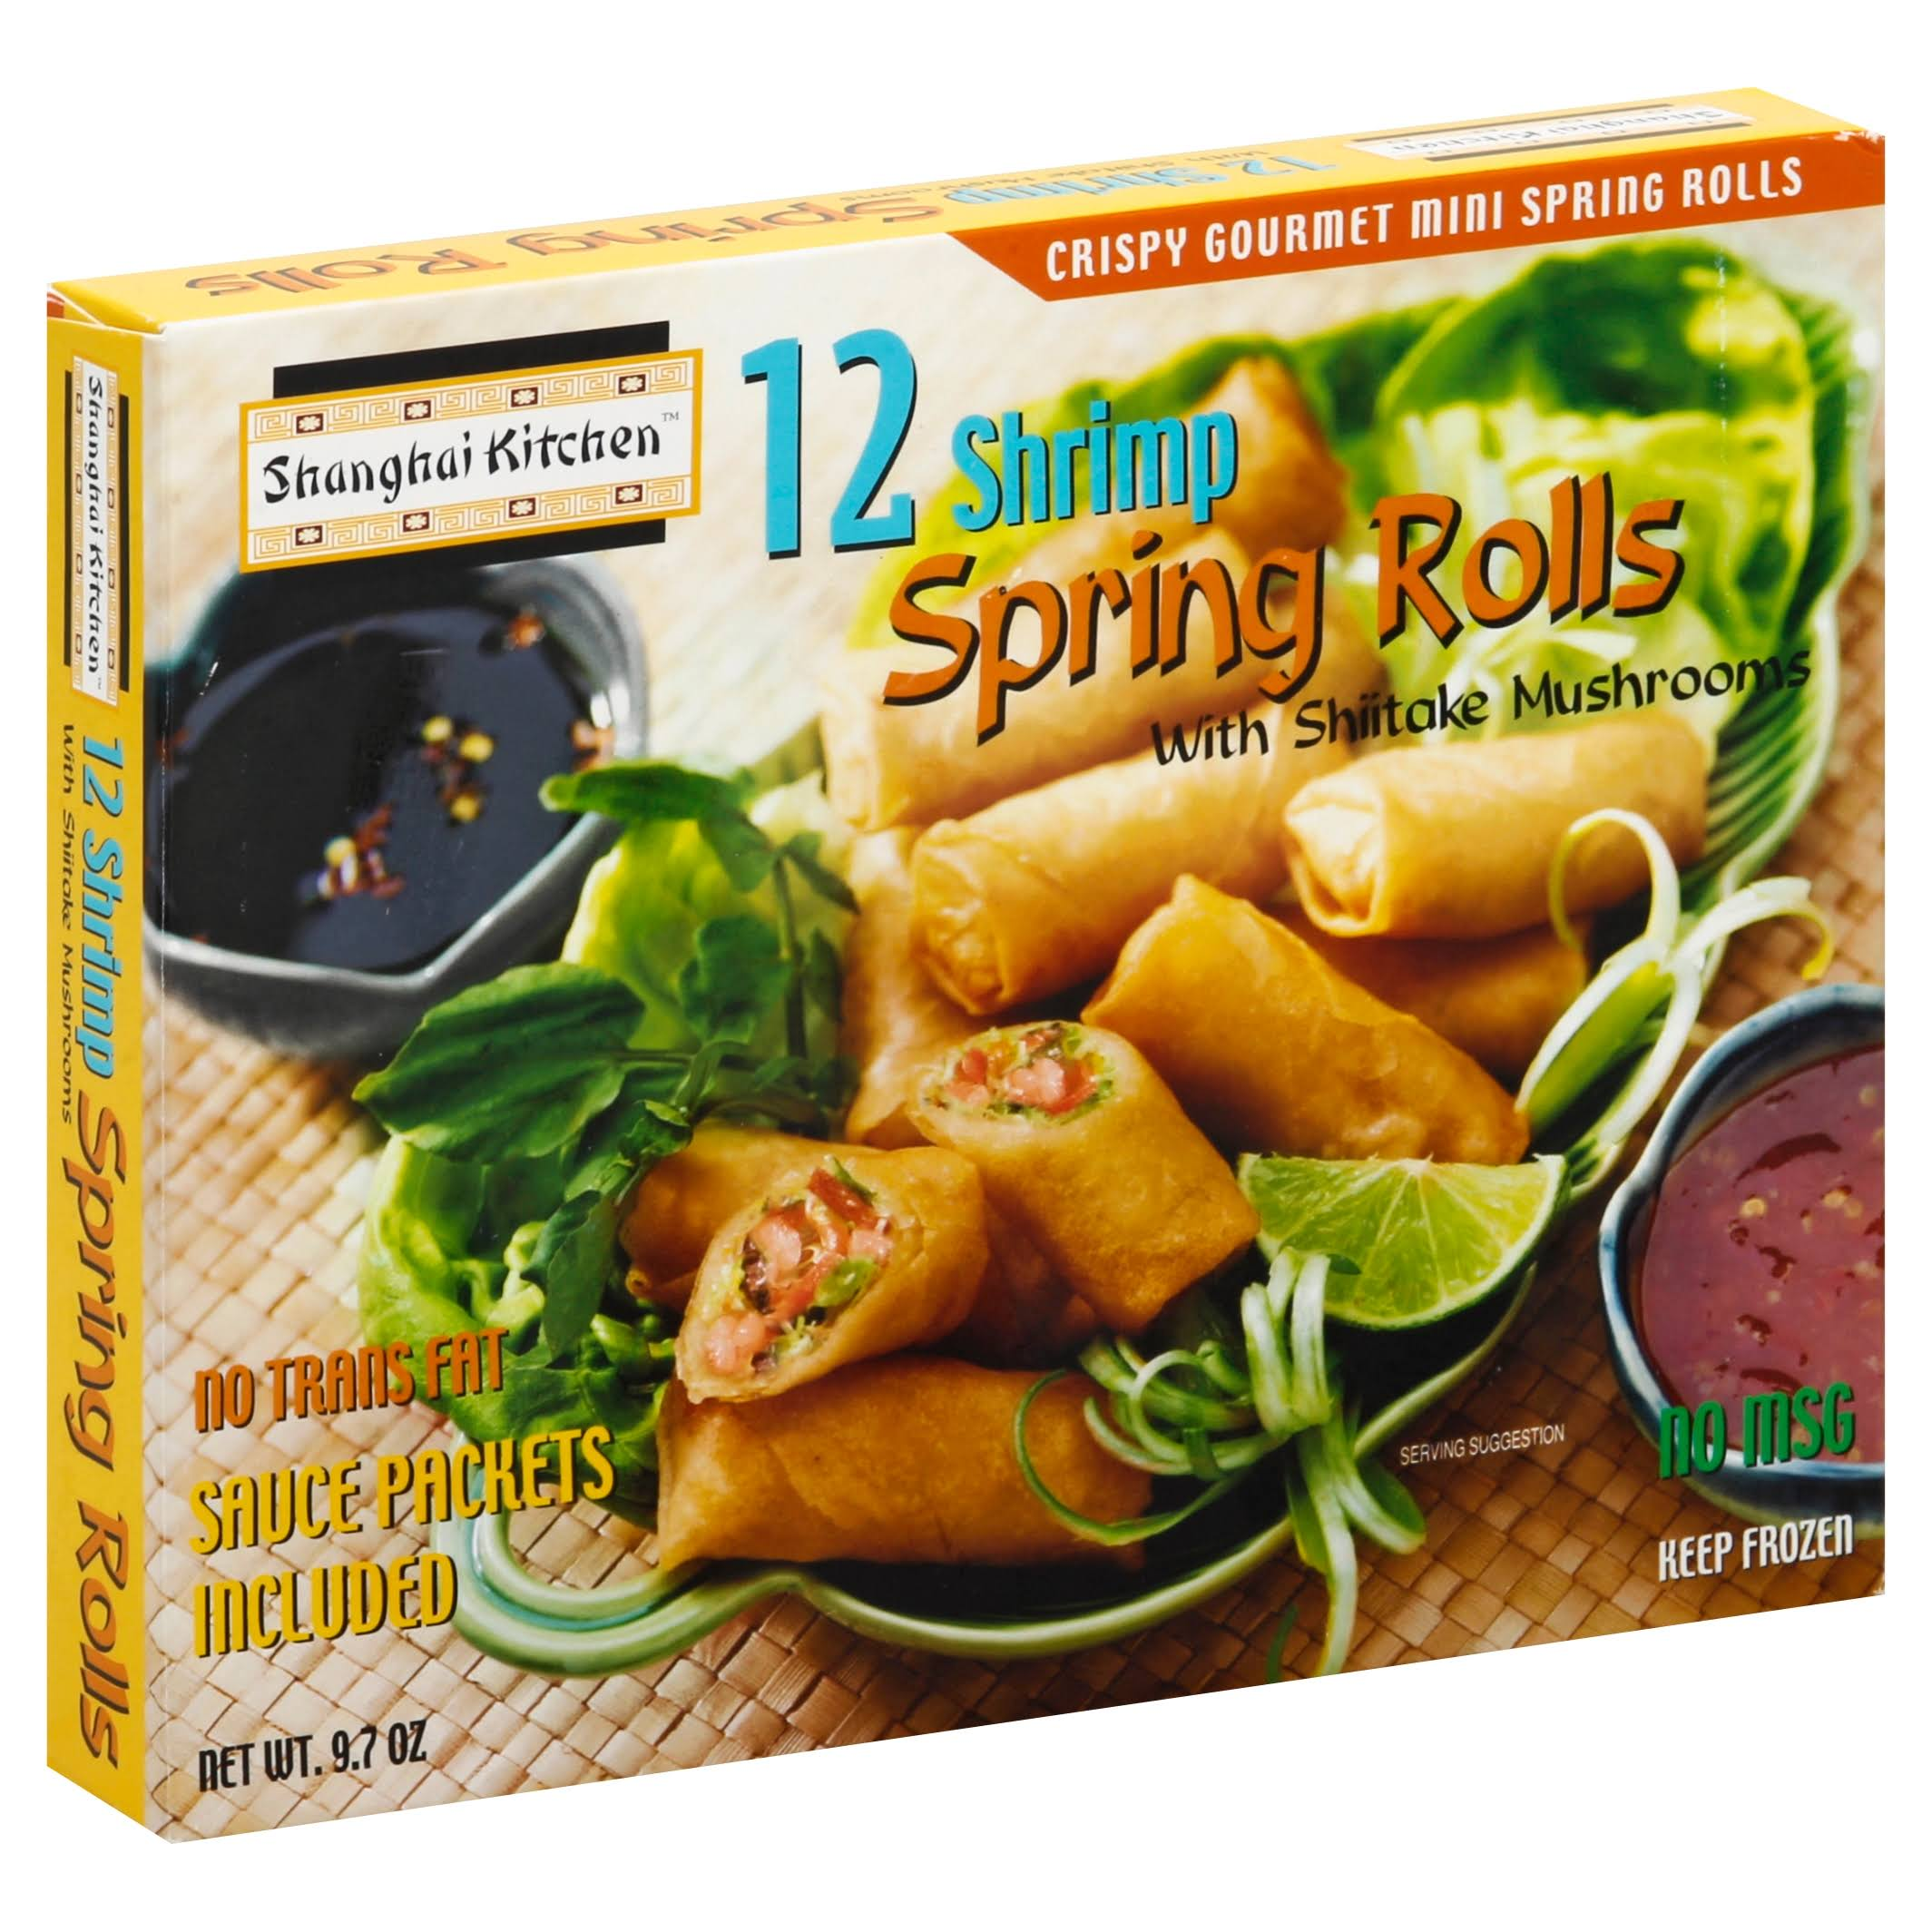 Shanghai Kitchen Spring Rolls, Mini, Shrimp - 12 spring rolls [9.7 oz]